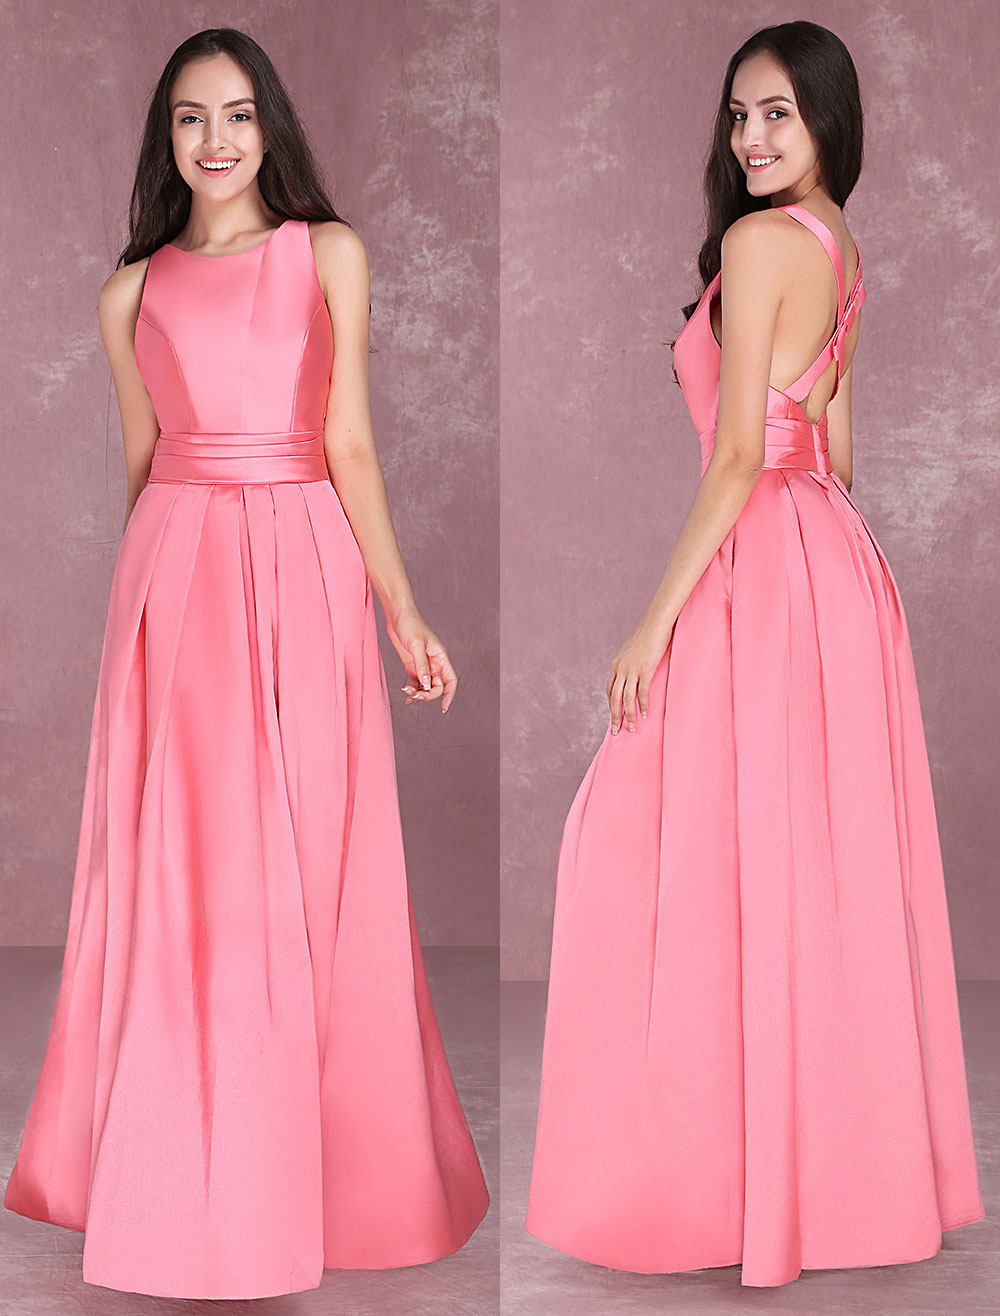 Buy Long Prom Dresses Satin Pleated Cross Back Cutoff Sleeveless Ruched Waist Floor Length Formal Evening Dress for $100.79 in Milanoo store